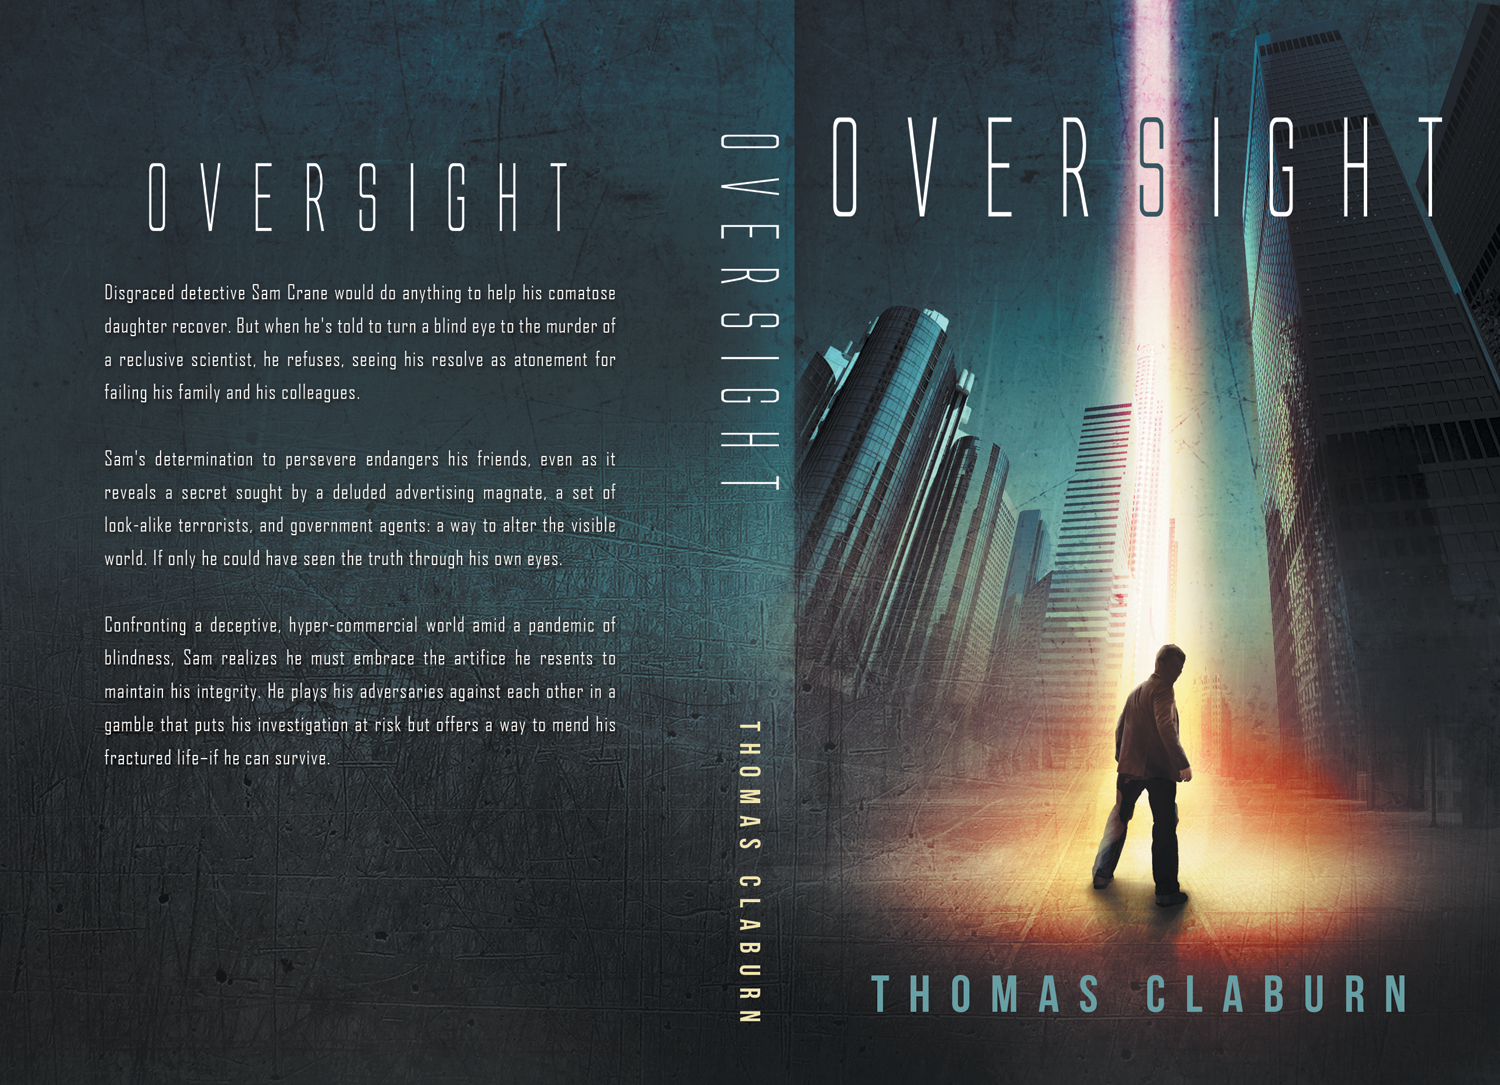 oversight_cover_1500w.png